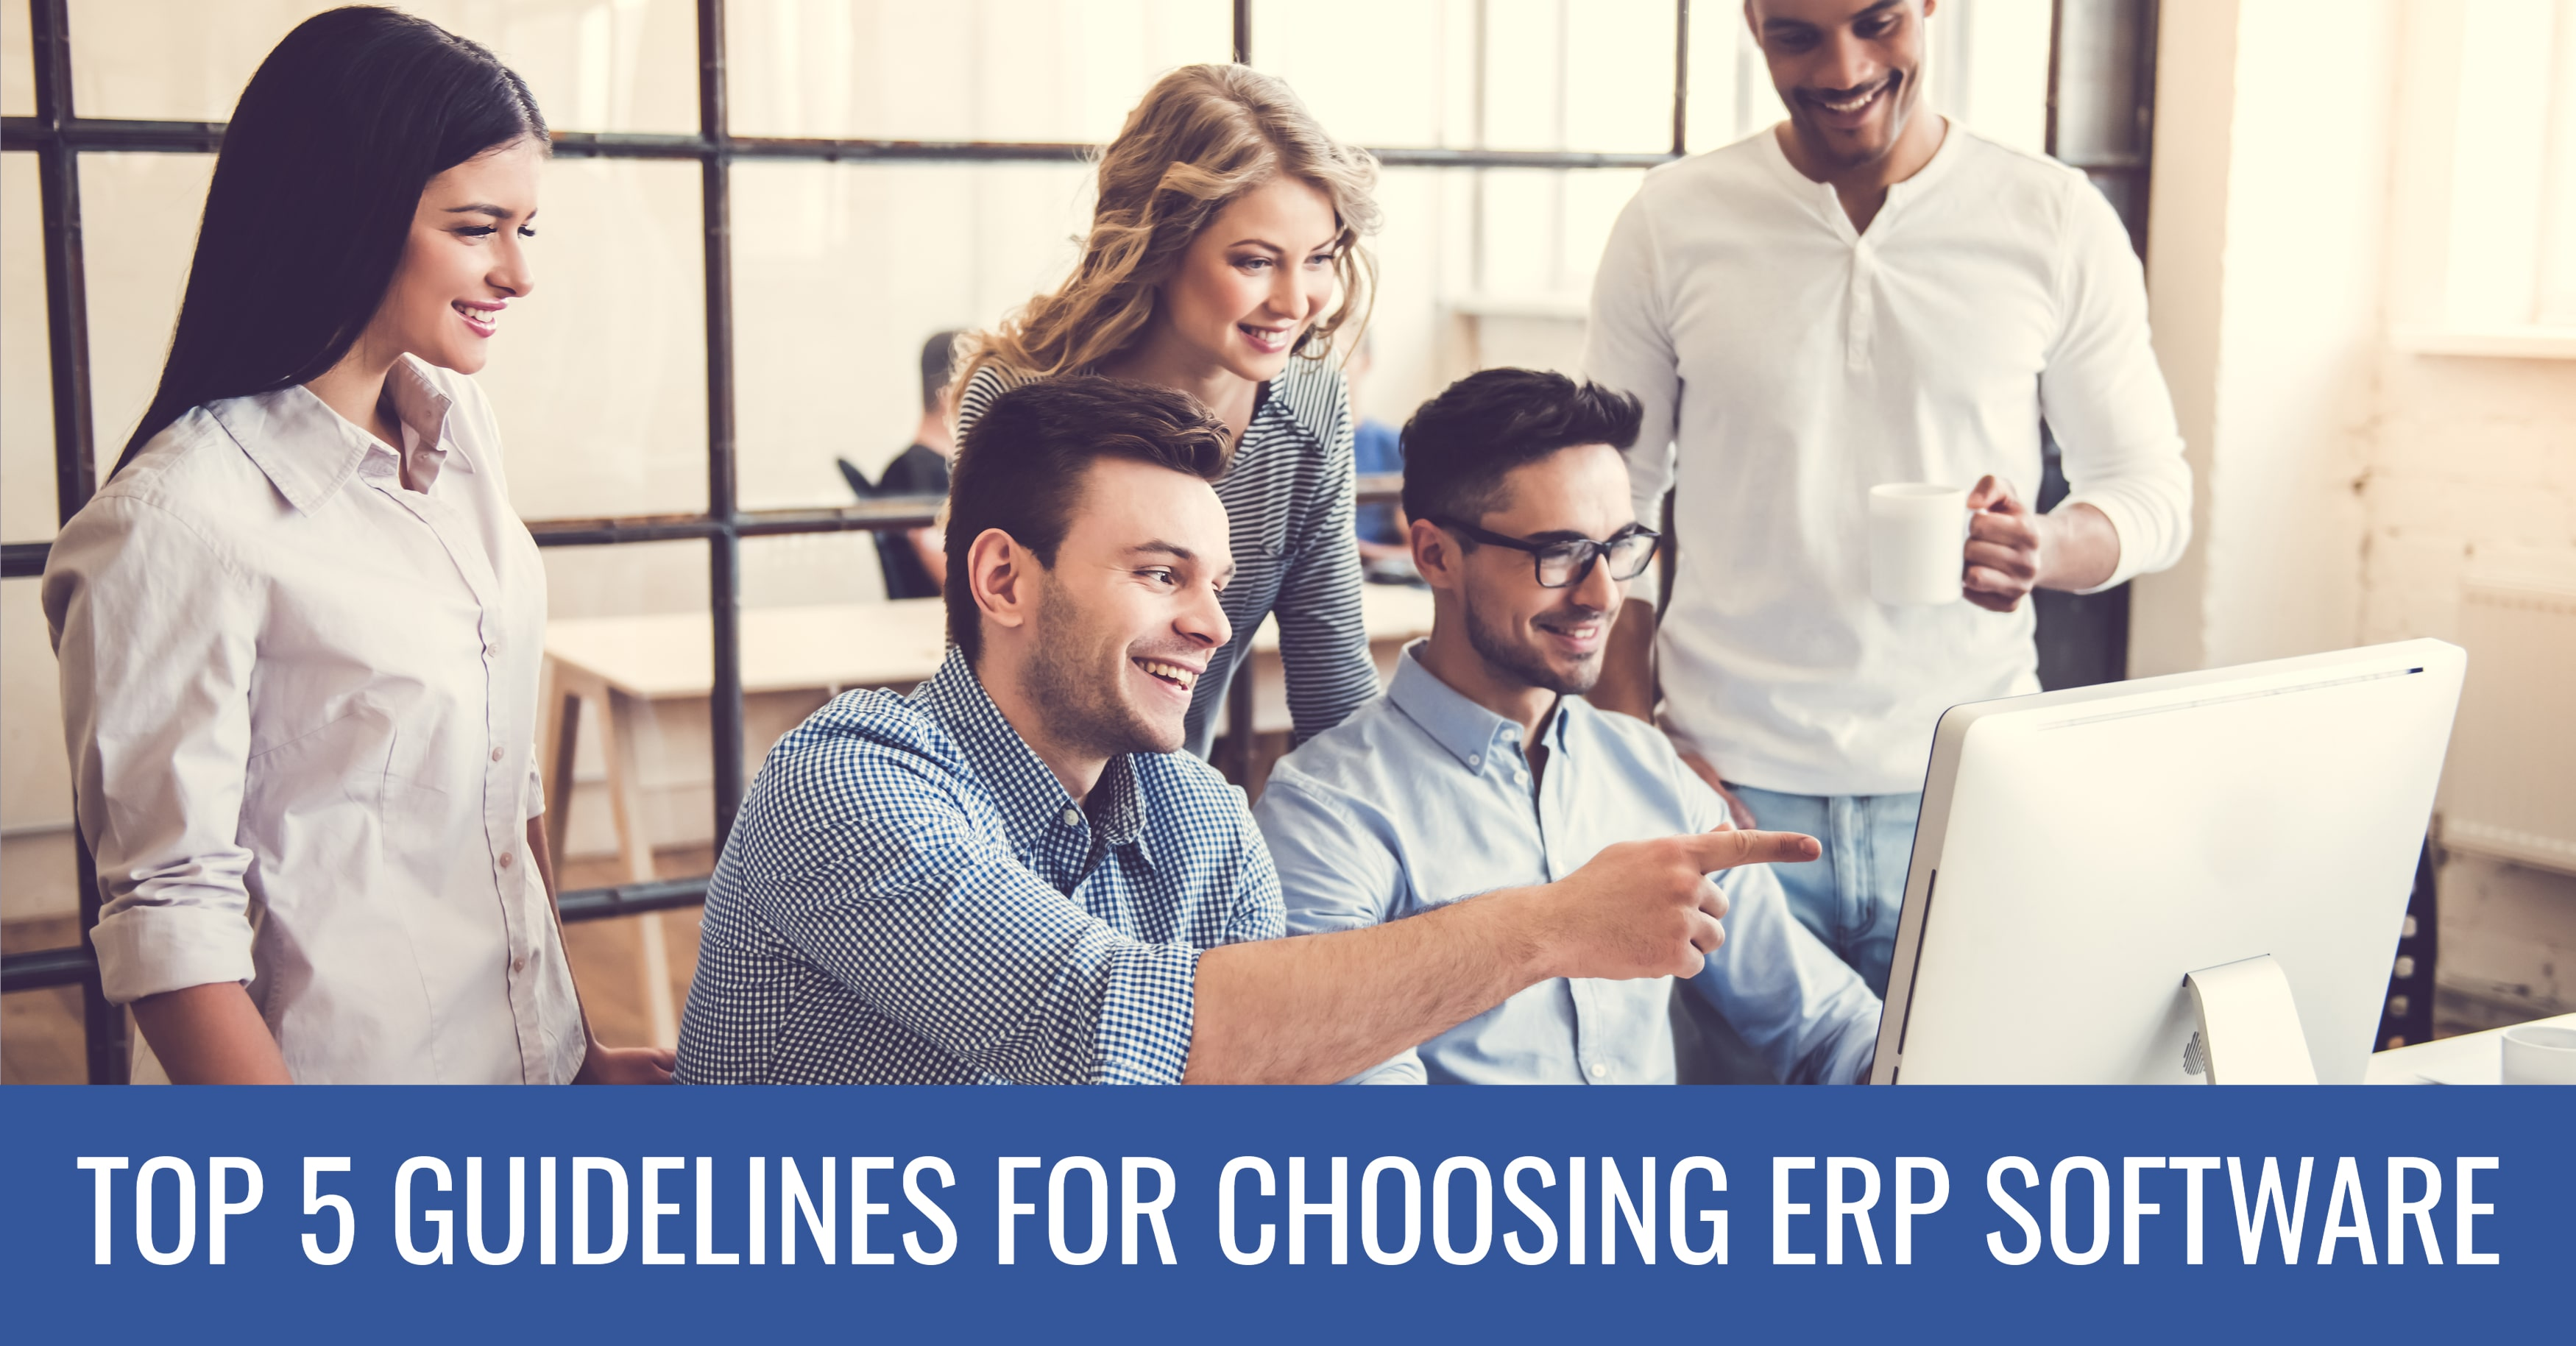 Top 5 Guidelines for Choosing ERP Software